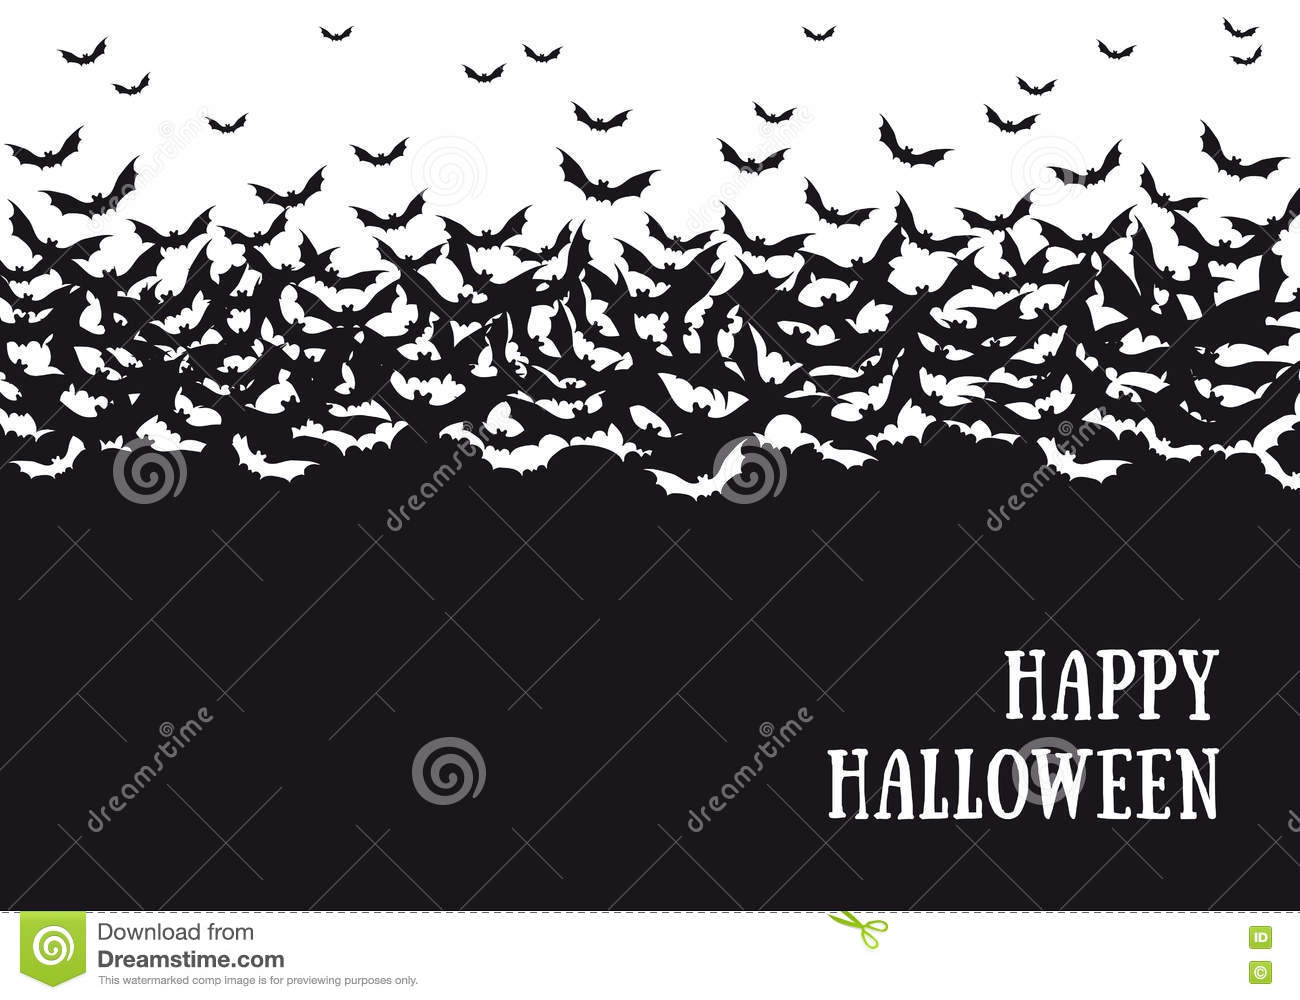 Halloween cute cat background in watercolor Vector  Free